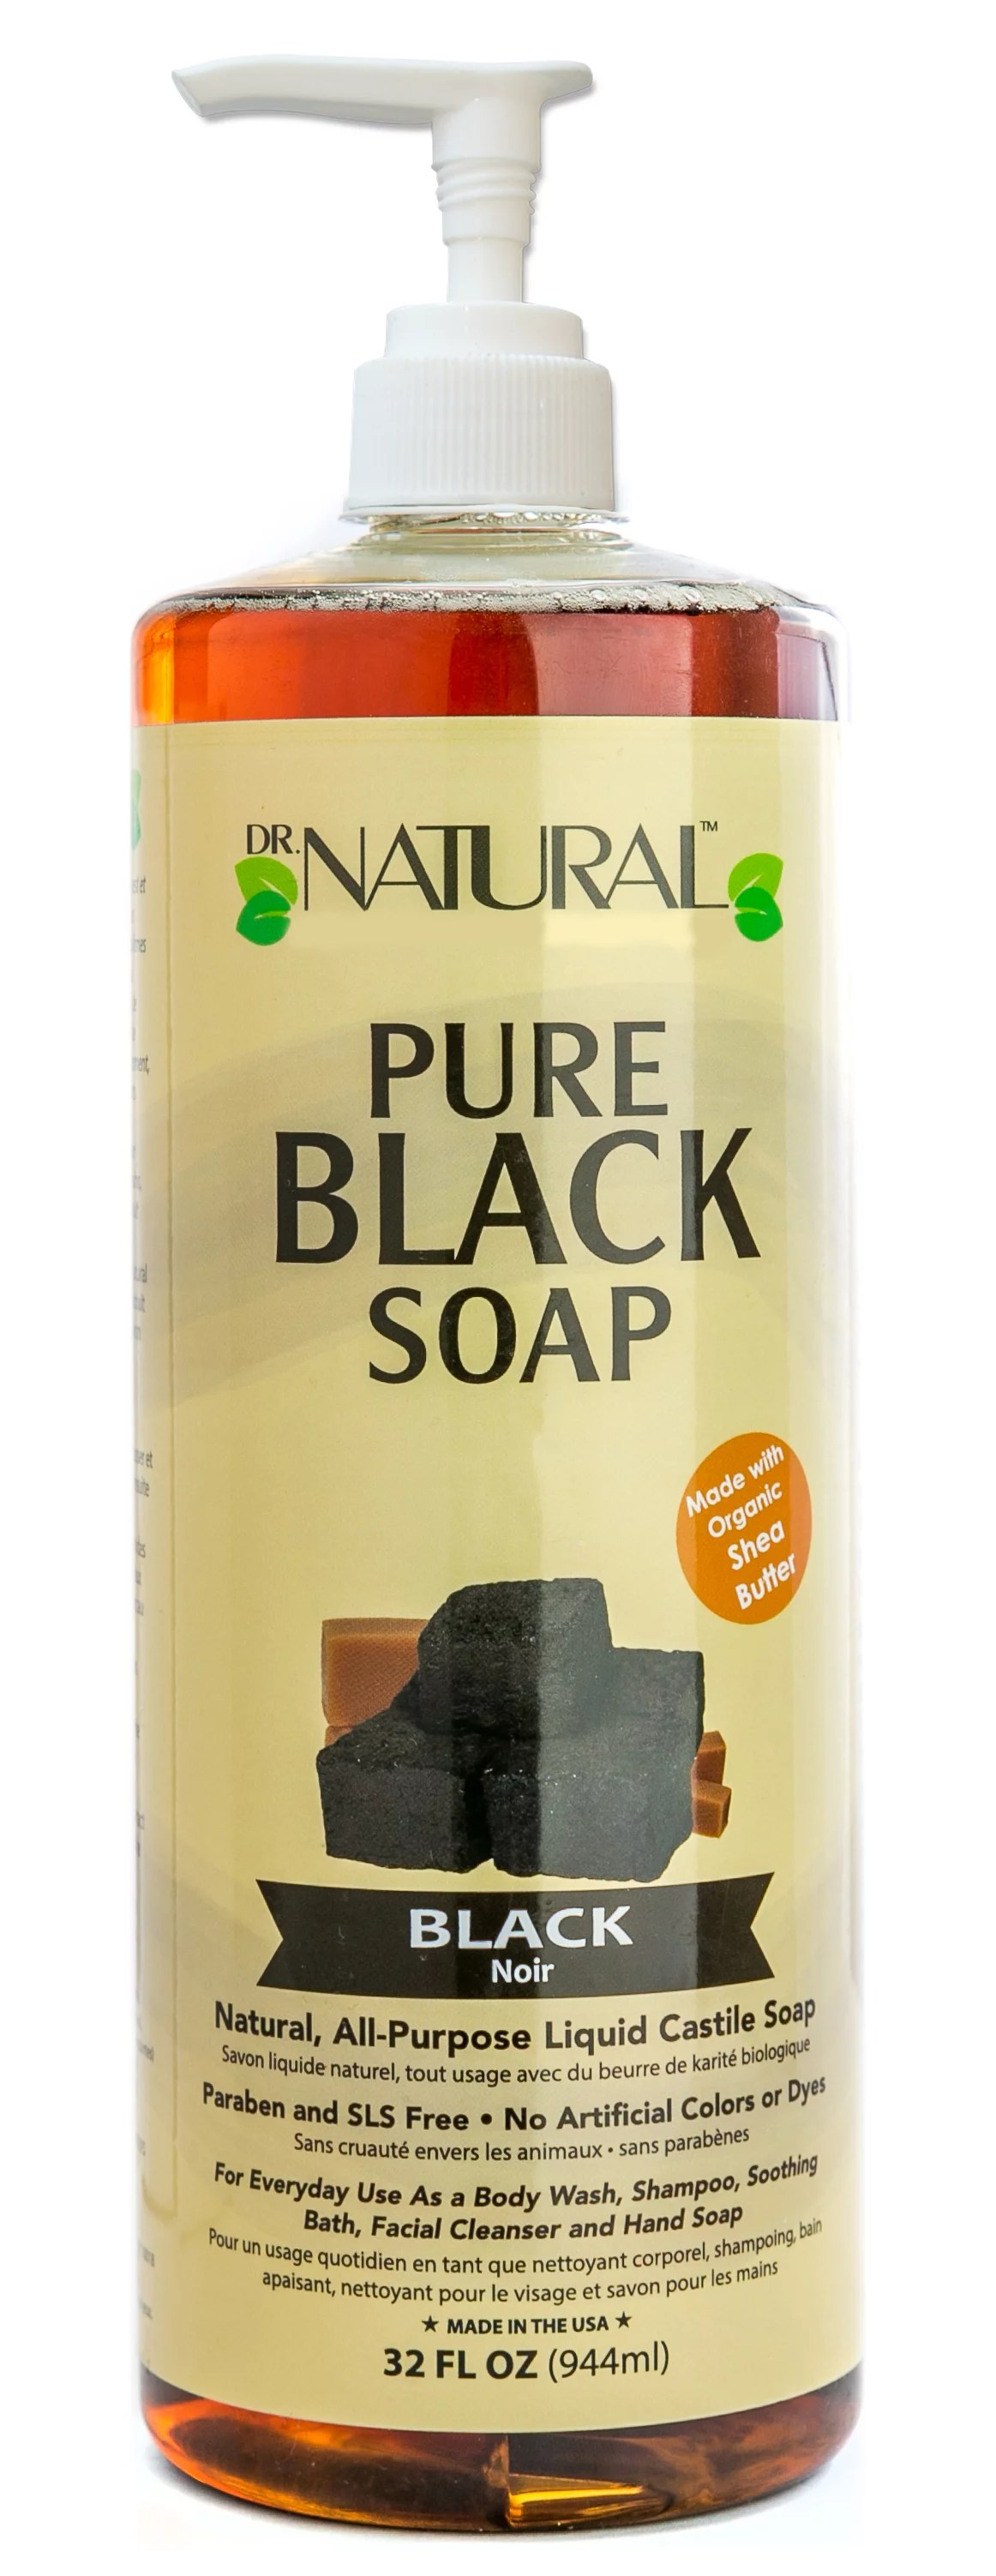 Dr Natural Pure Black Soap Natural All Purpose Liquid Castile Soap 32 Oz With Pump Walmart Com Walmart Com